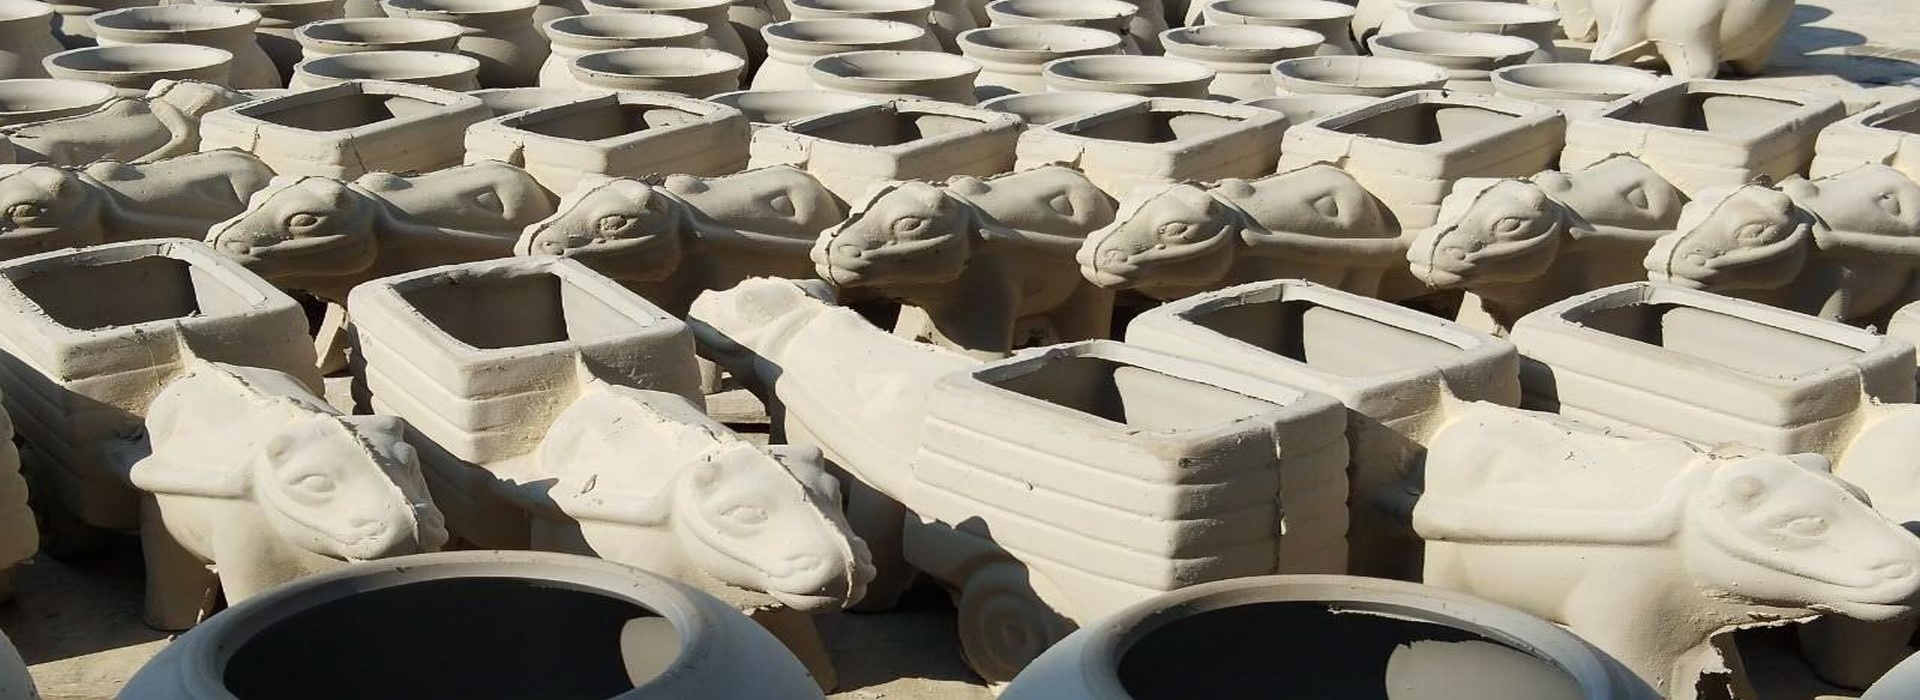 ceramics pots manufacturer in khurja